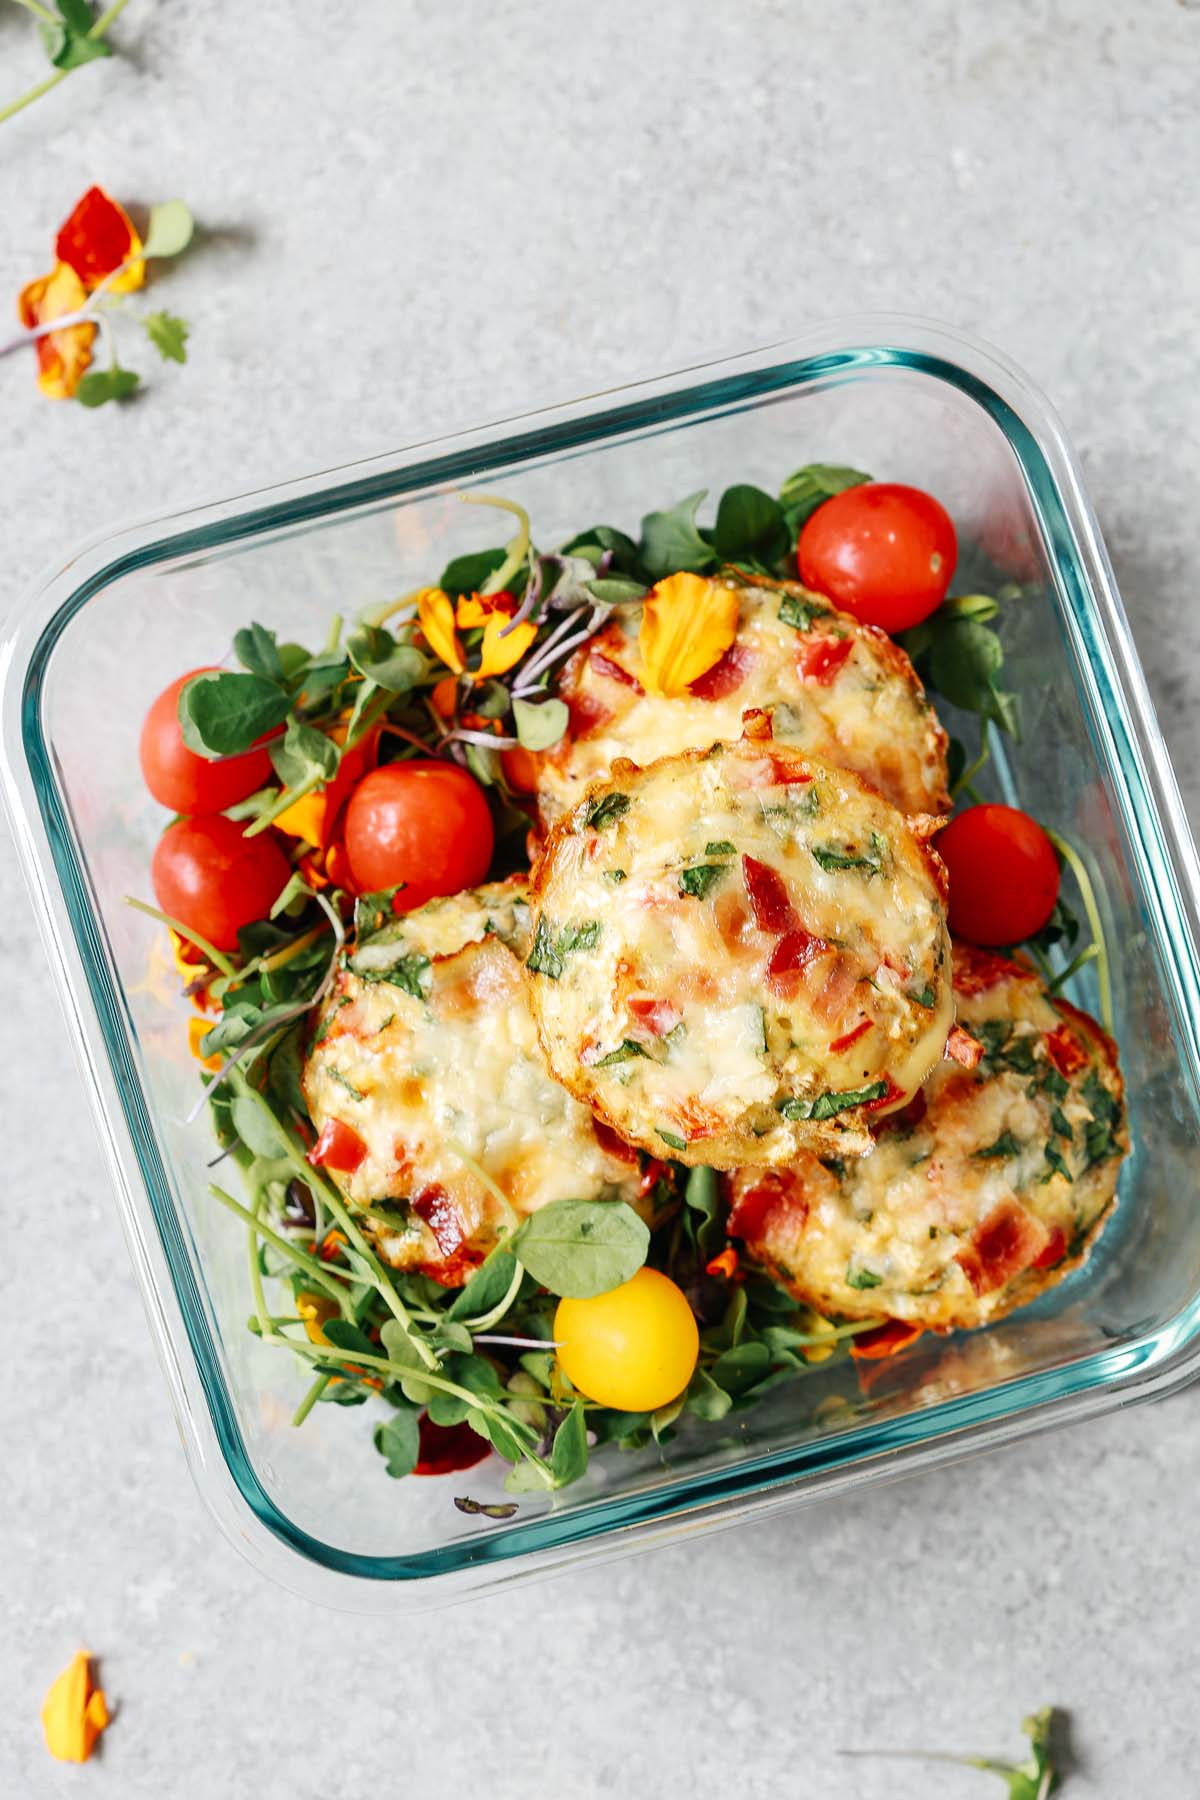 meal prep container with 3 breakfast egg muffins and cherry tomatoes on top of salad greens